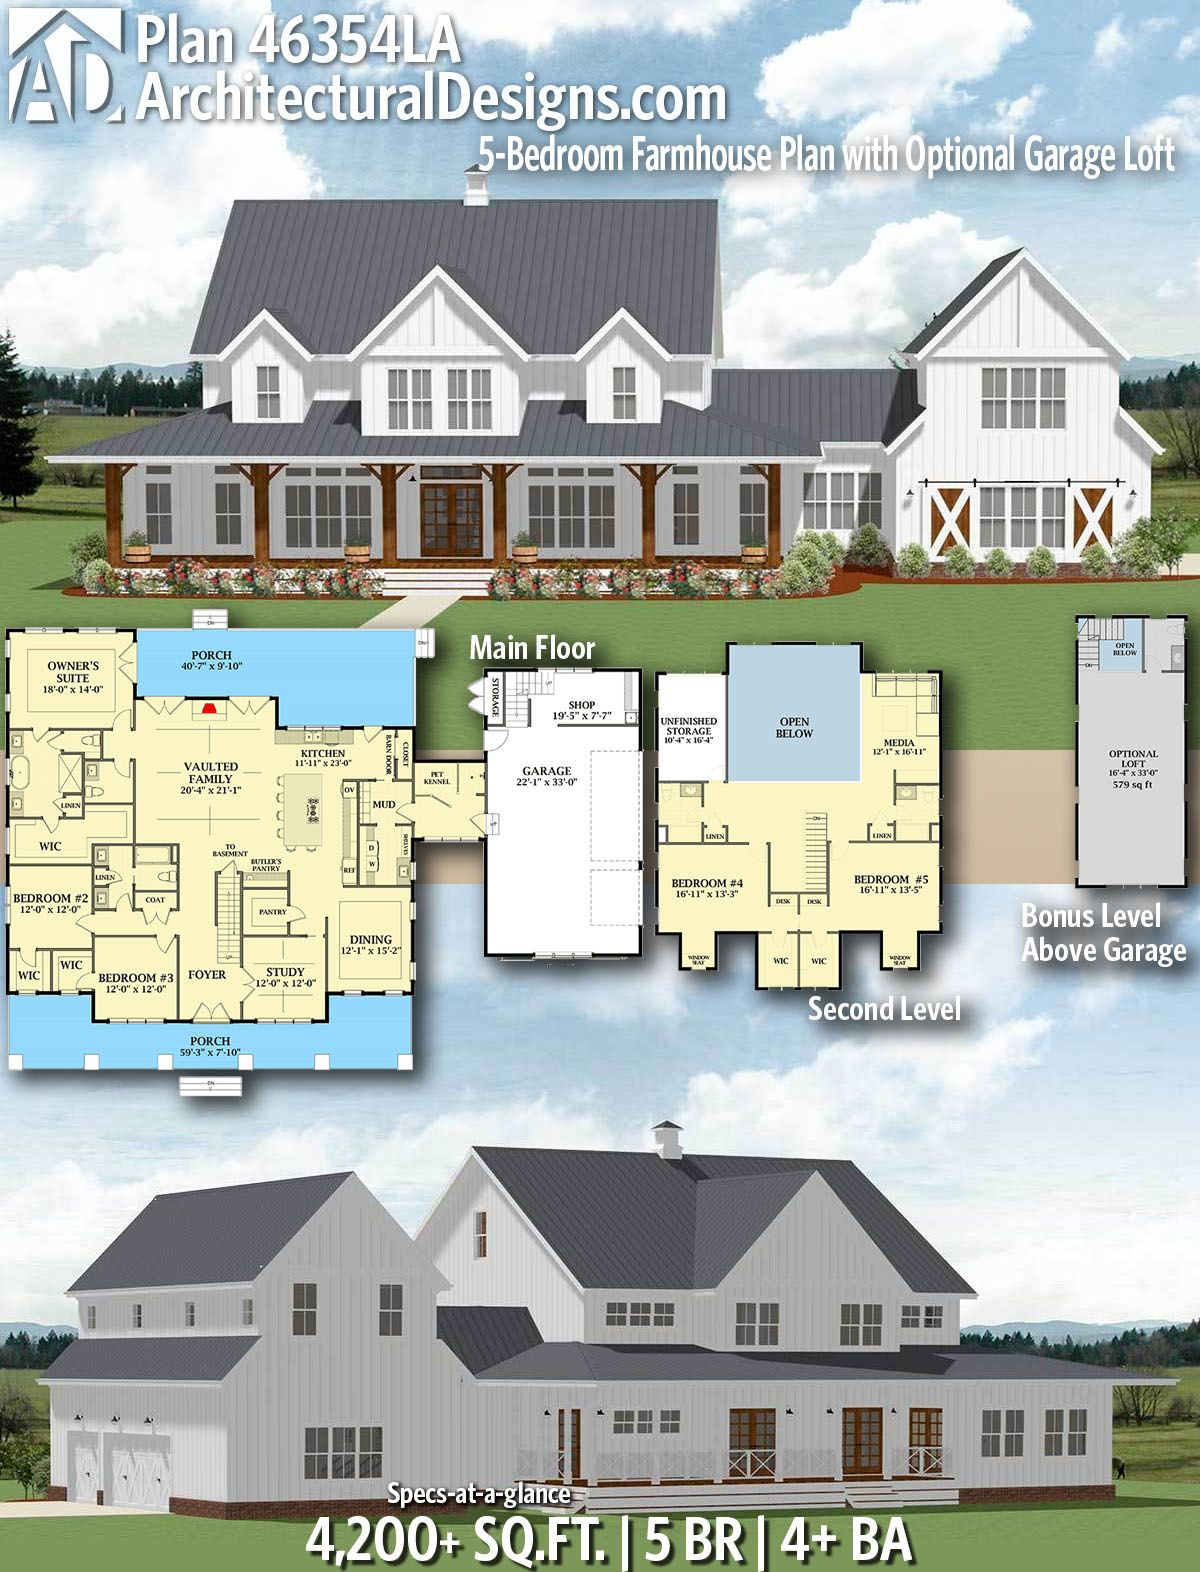 Architectural Designs Farmhouse Plan 46354la Gives You 5 Bedrooms 4 Baths And 4 200 Sq Ft Rea House Plans Farmhouse Farmhouse Plans Modern Farmhouse Plans